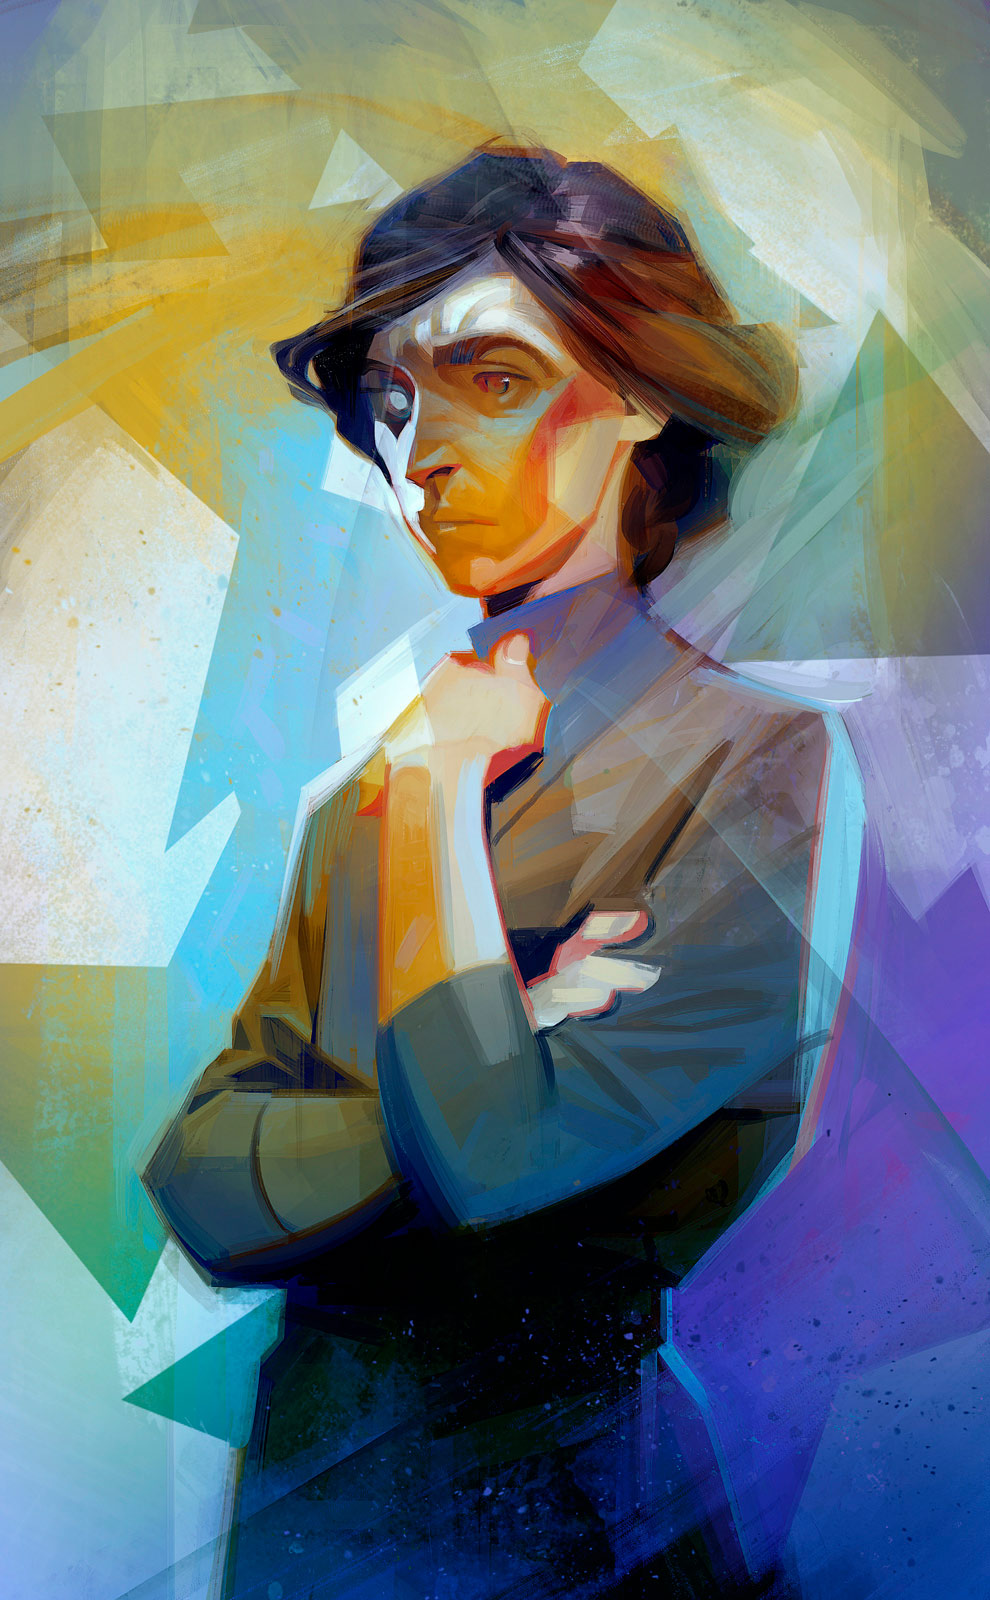 Digital Art & Amazing Illustrations by Sergey Kolesov 5